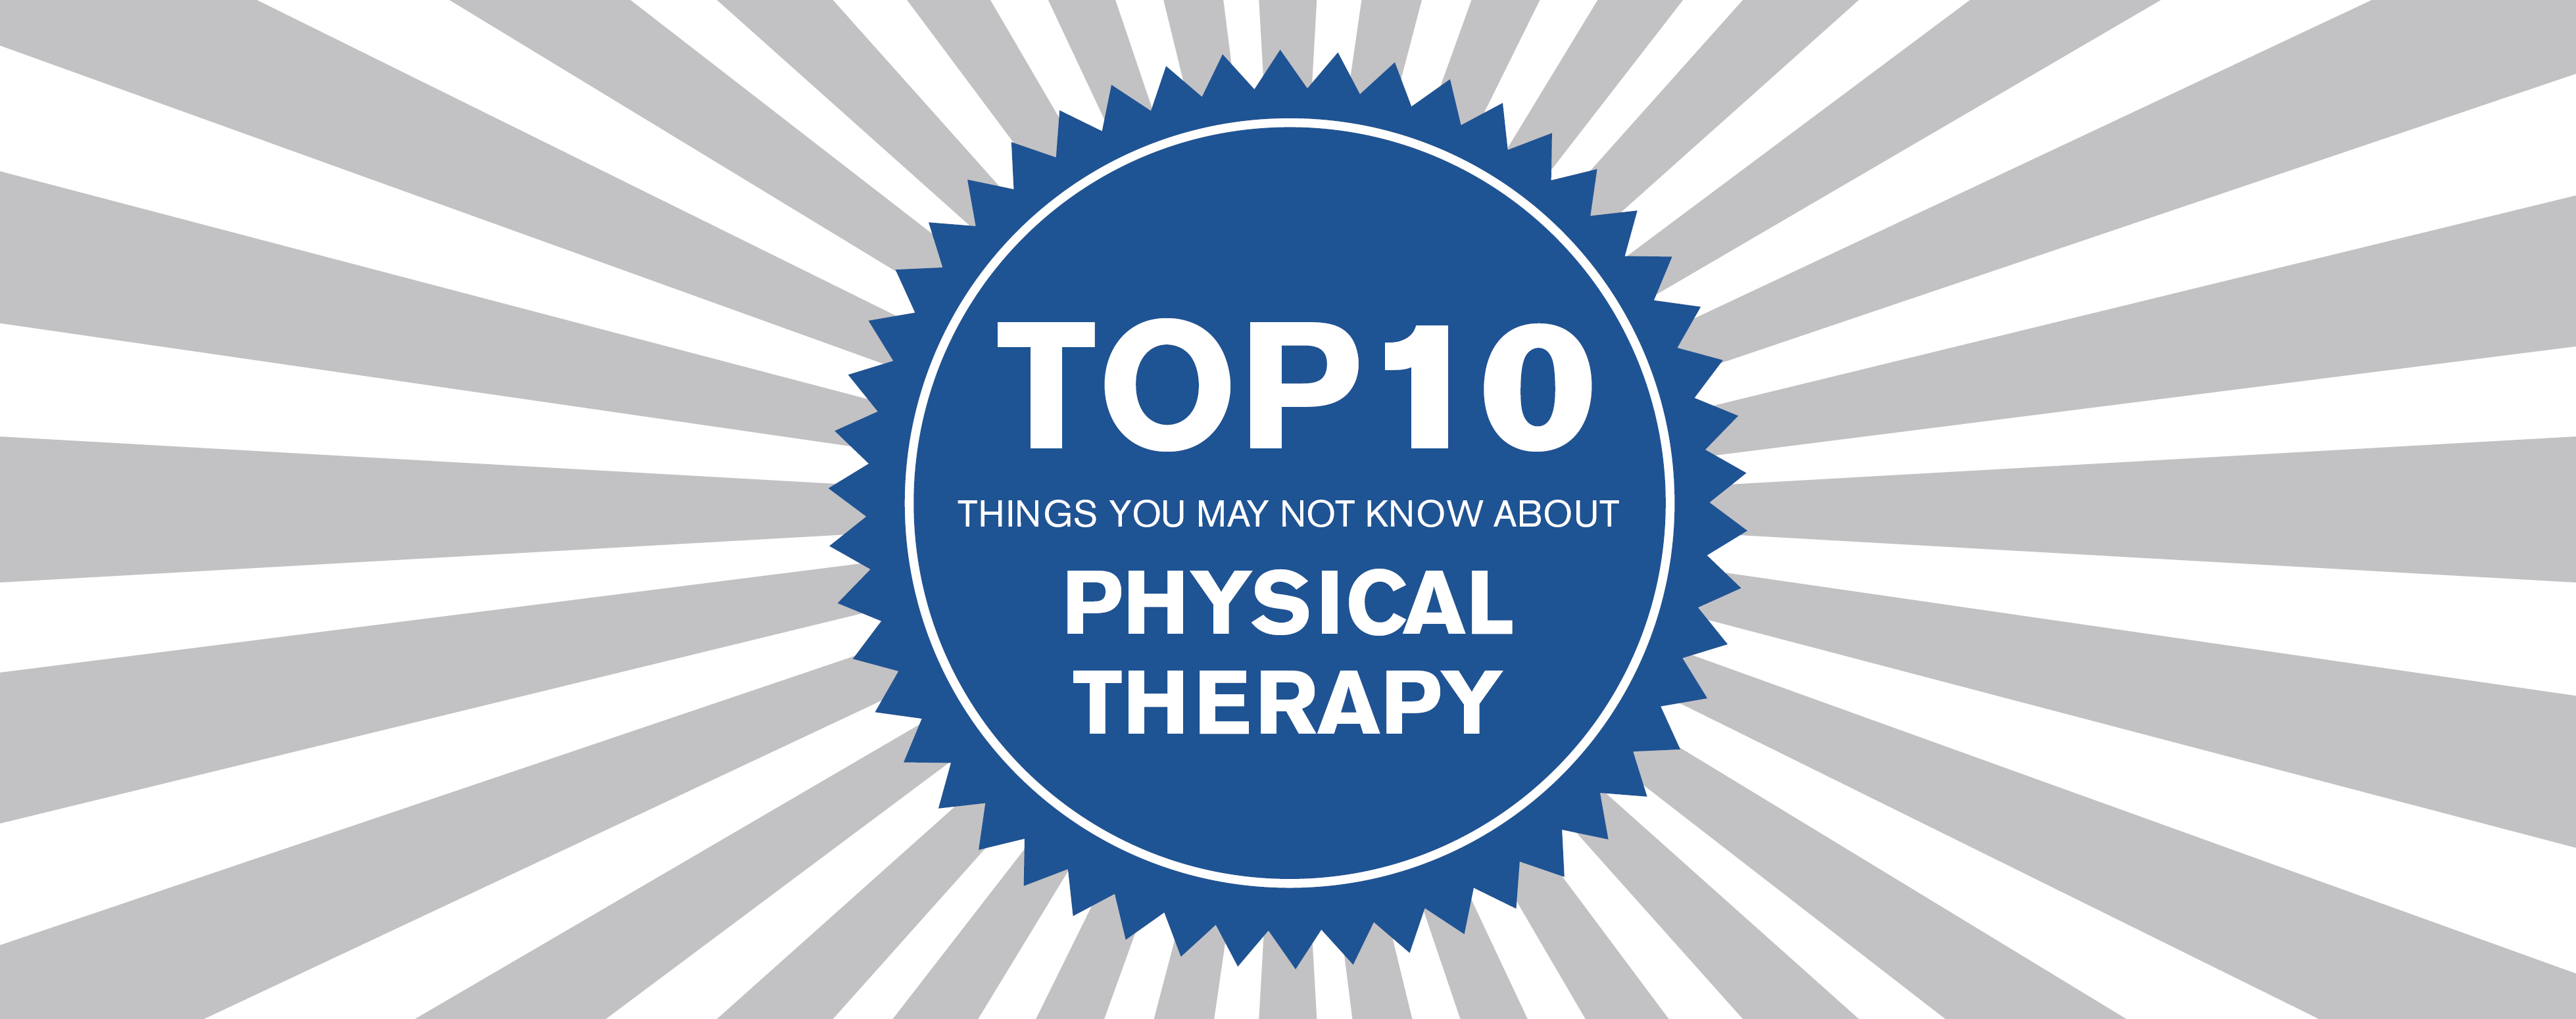 The Top 10 Things You Did Not Know About Physical Therapy